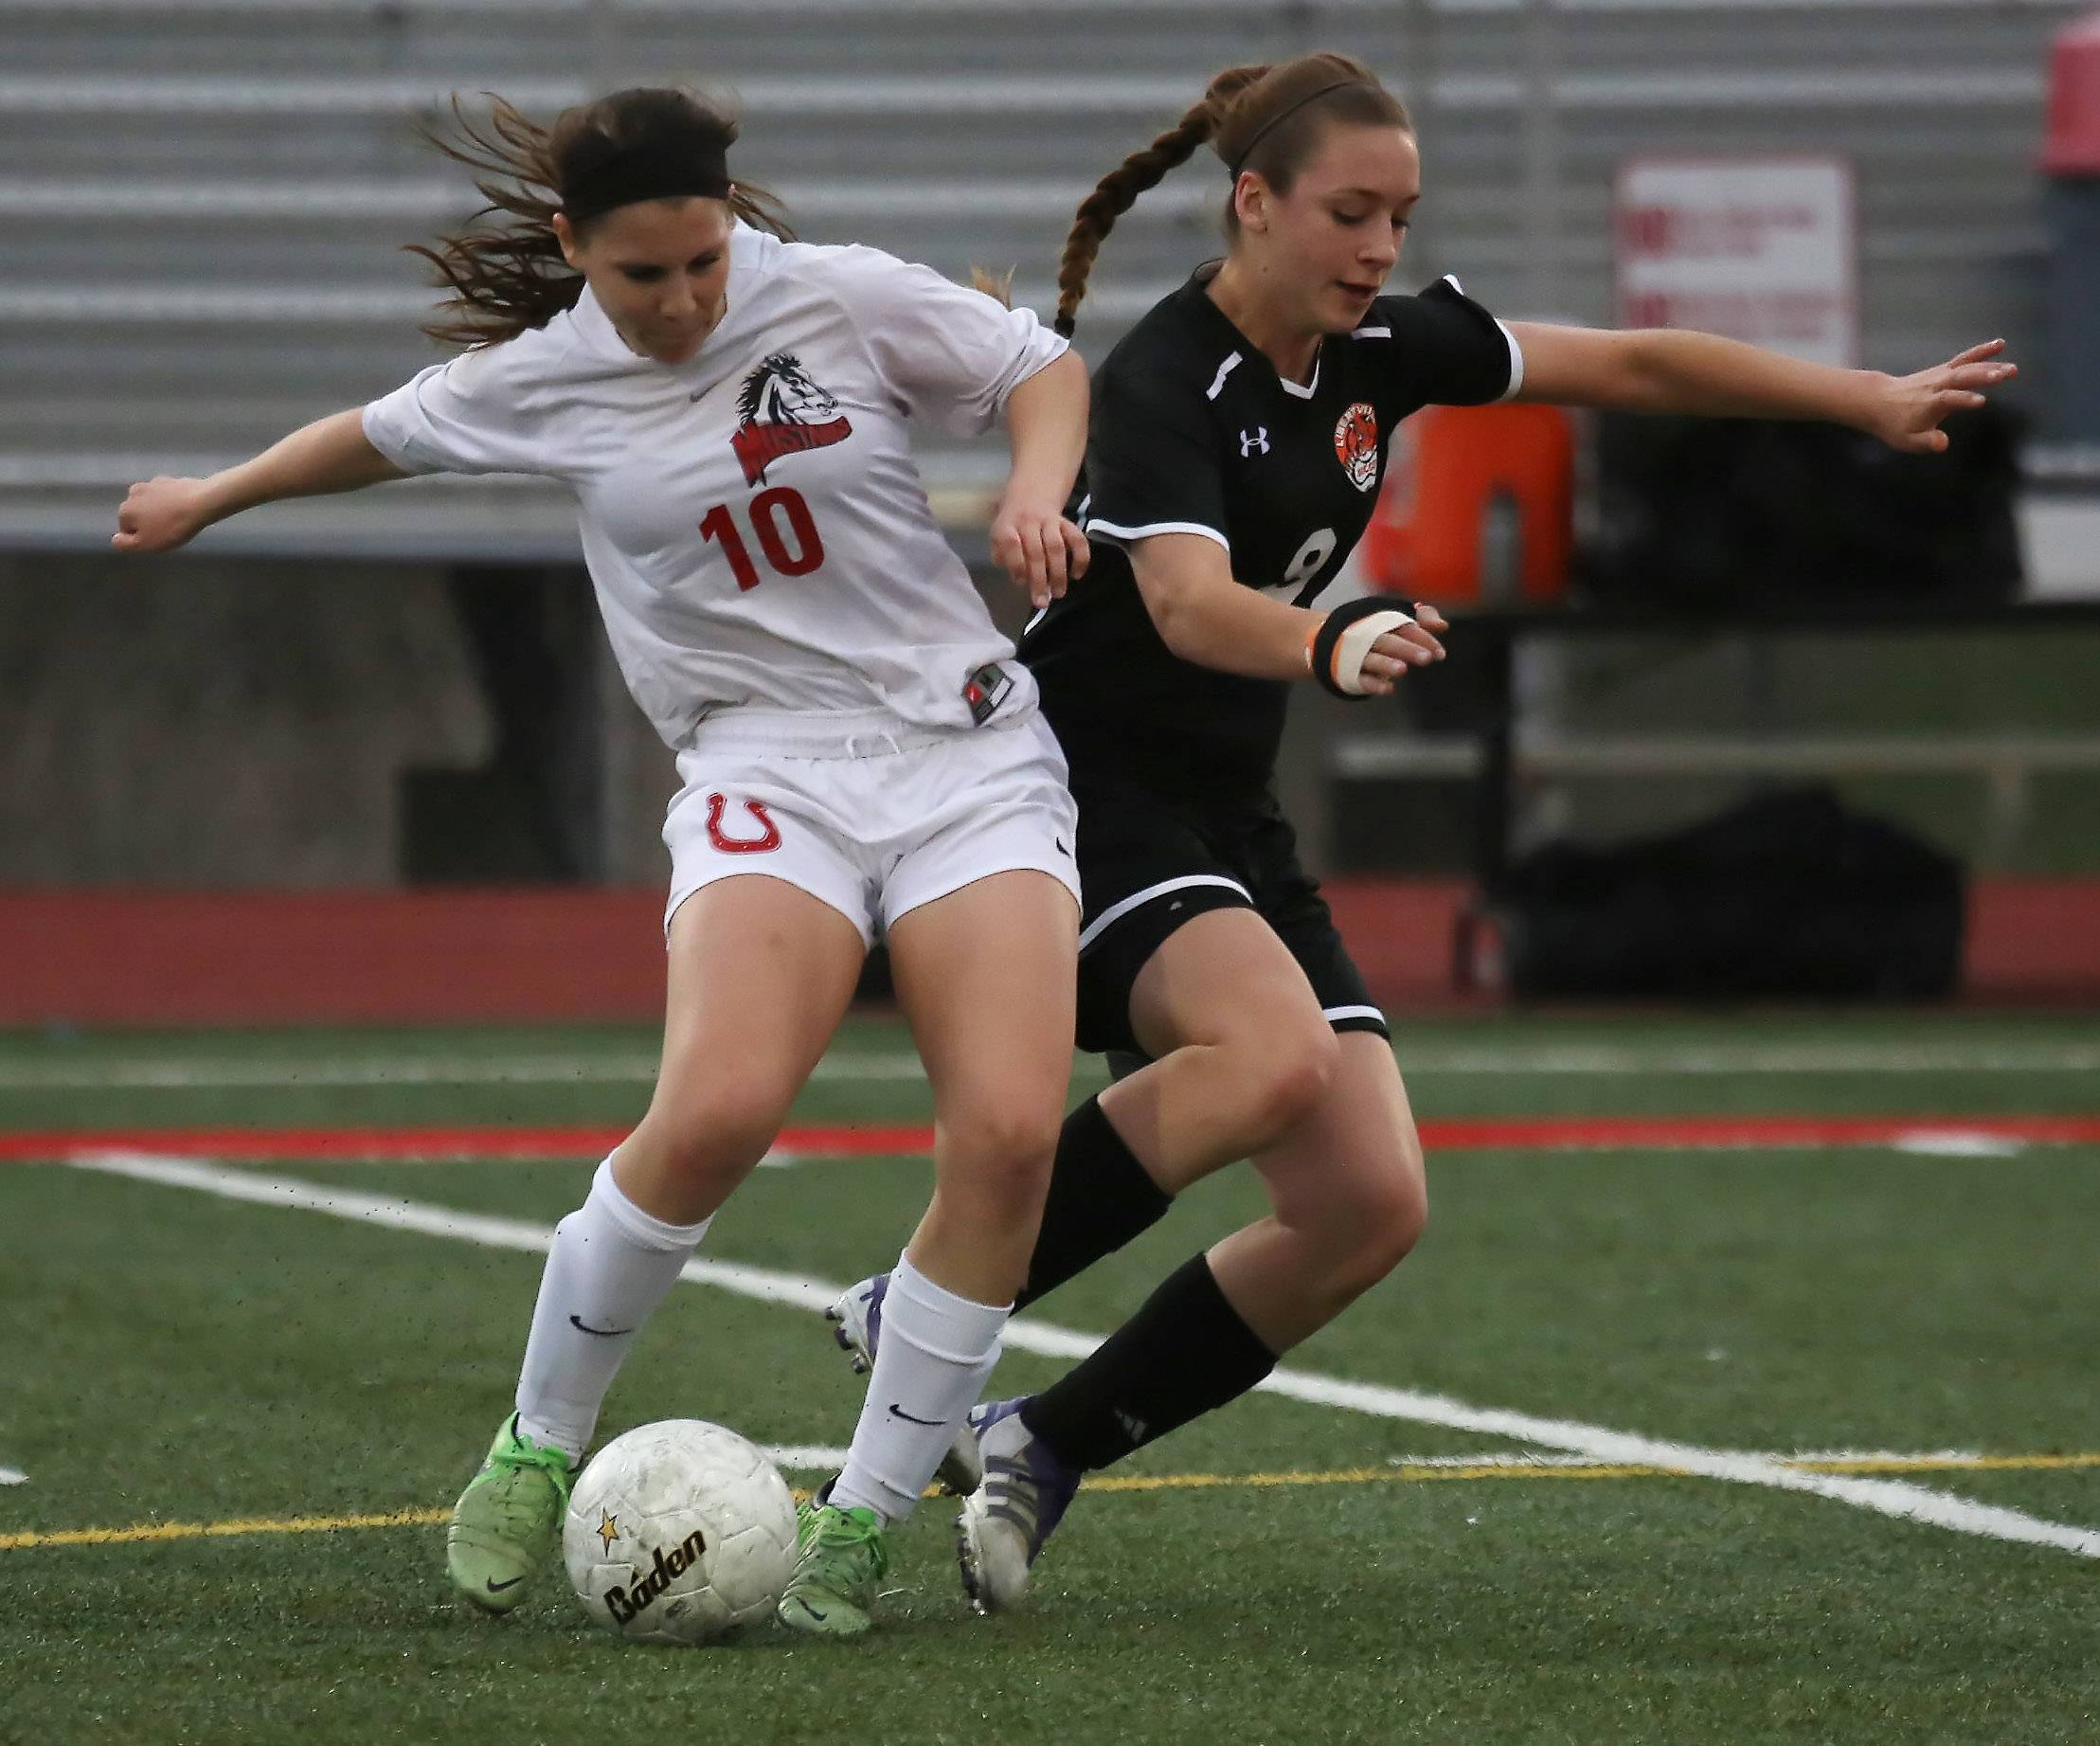 Mundelein's Kaila Cancelli (10) battles to take the ball away from Libertyville's Abbey Peters (9) on Tuesday at Mundelein.